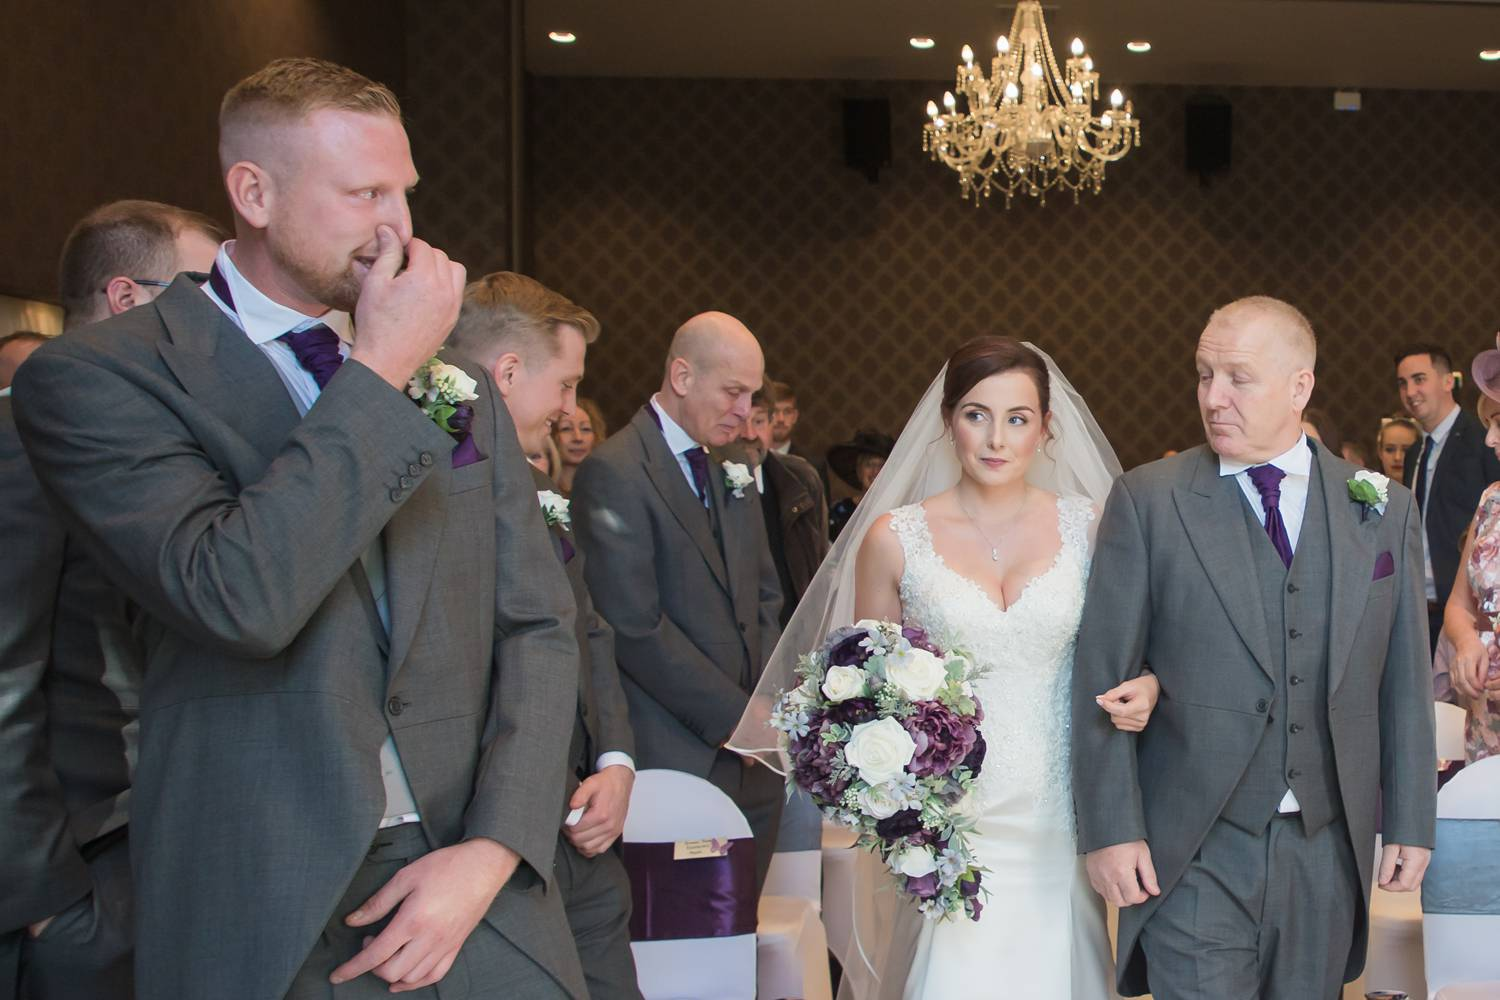 Burntwood-Court-Wedding-Photographer-0046